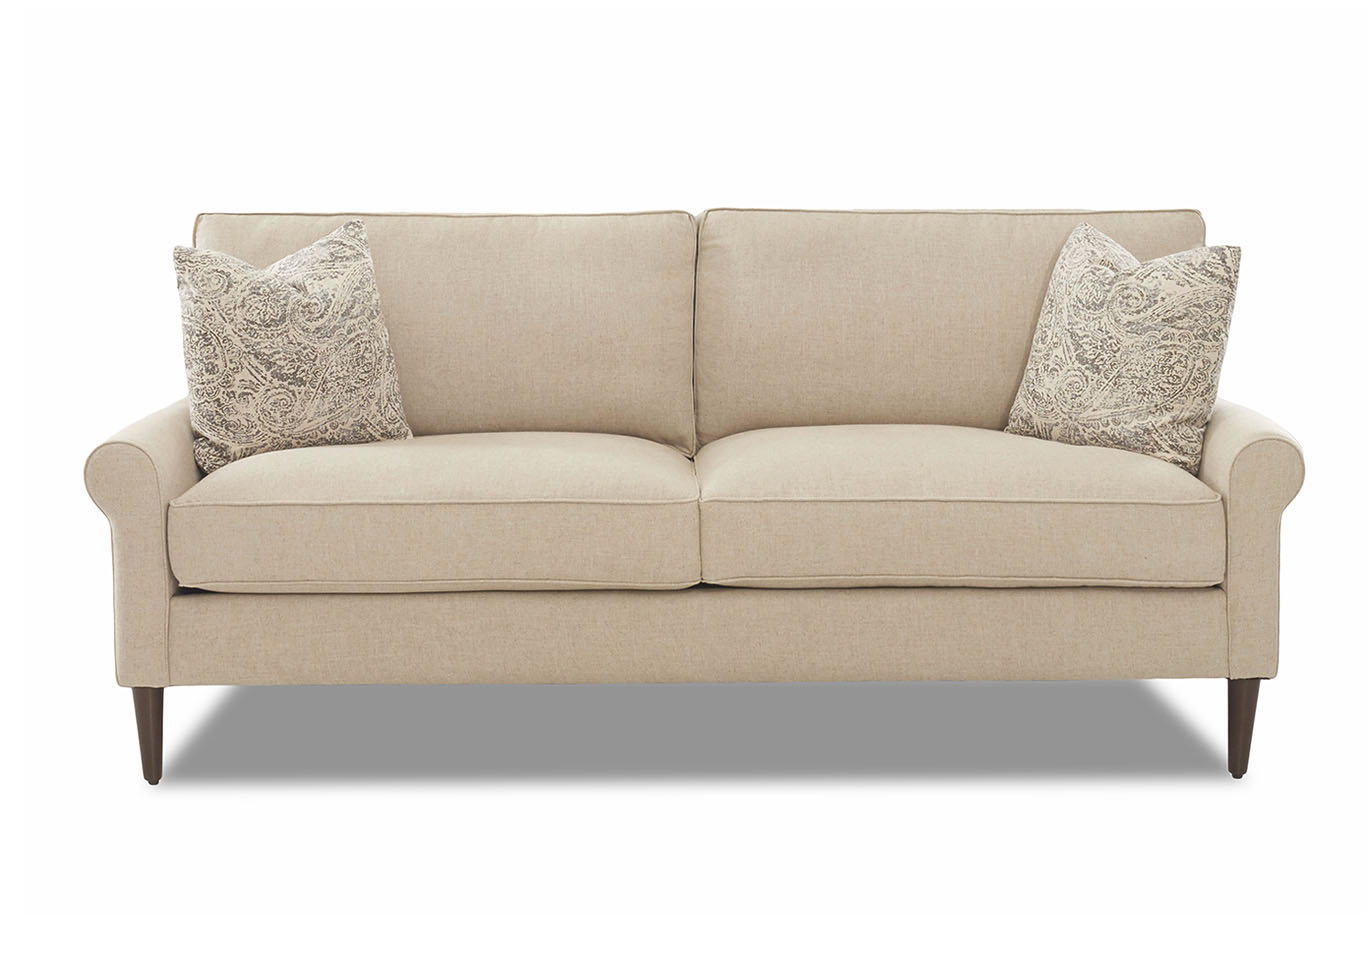 Chelsea Studio Natural Stationary Fabric Loveseat,Klaussner Home Furnishings